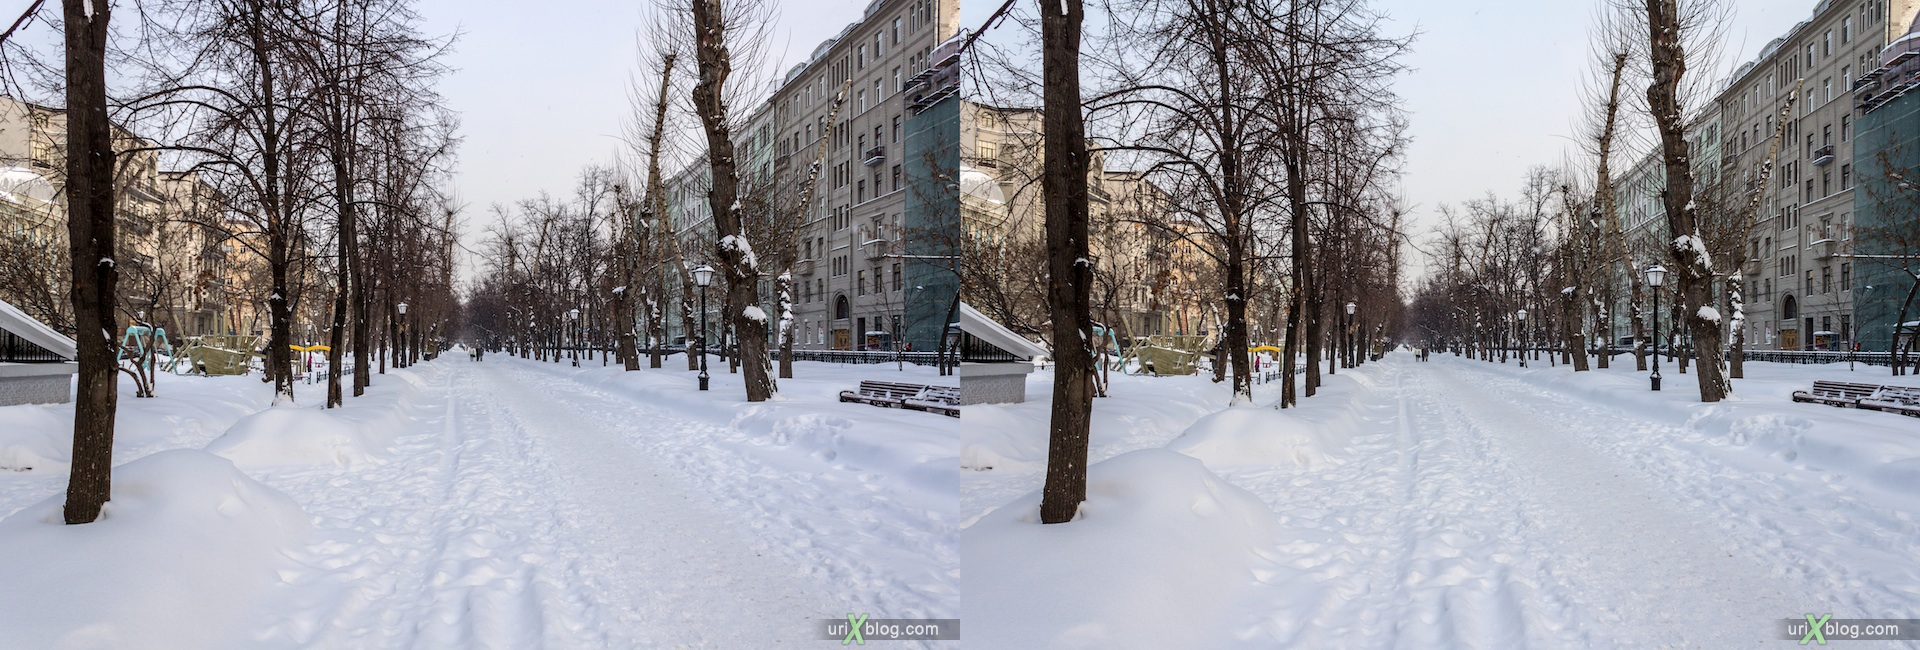 2013, Tverskoy Bulvar, Moscow, snow, winter, city, Russia, 3D, stereo pair, cross-eyed, crossview, cross view stereo pair